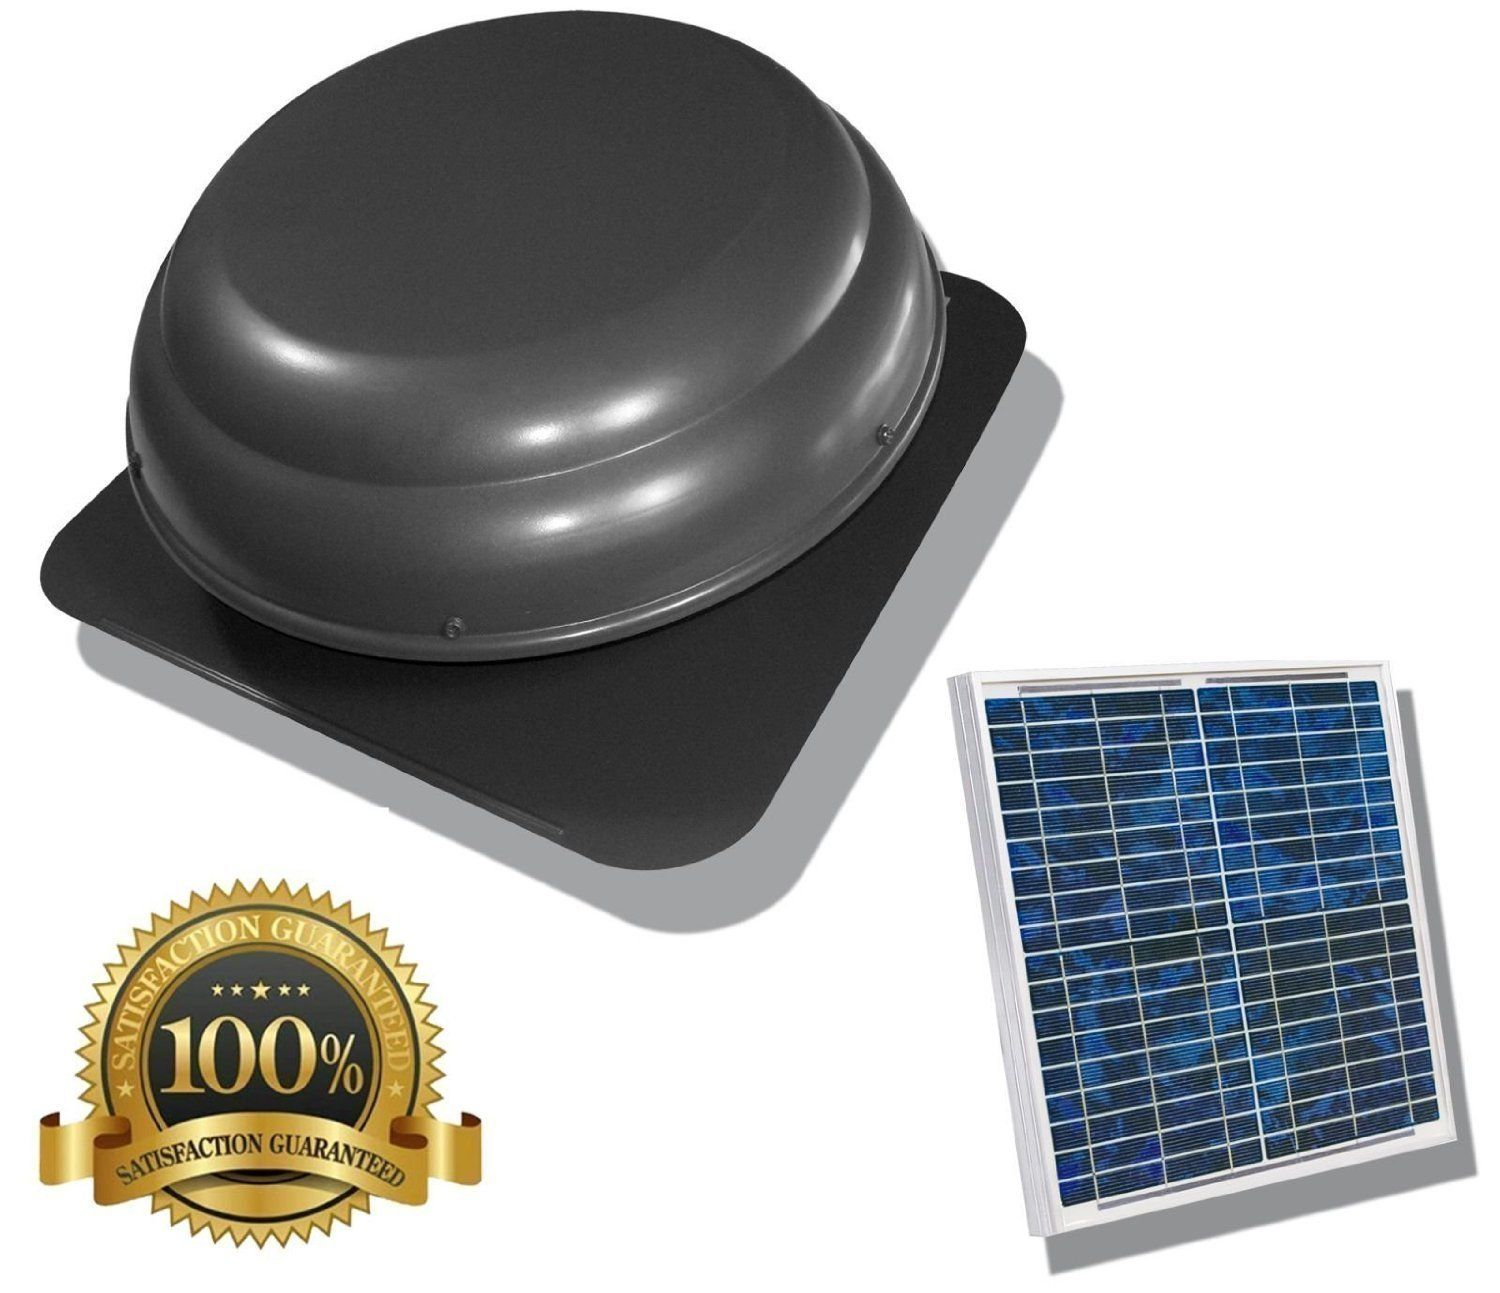 Premium Solar Attic Fan Ultra Efficient Brushless Dc Motor Rust Protective Material You Can Solar Attic Fan Solar Panels For Home Solar Powered Attic Fan